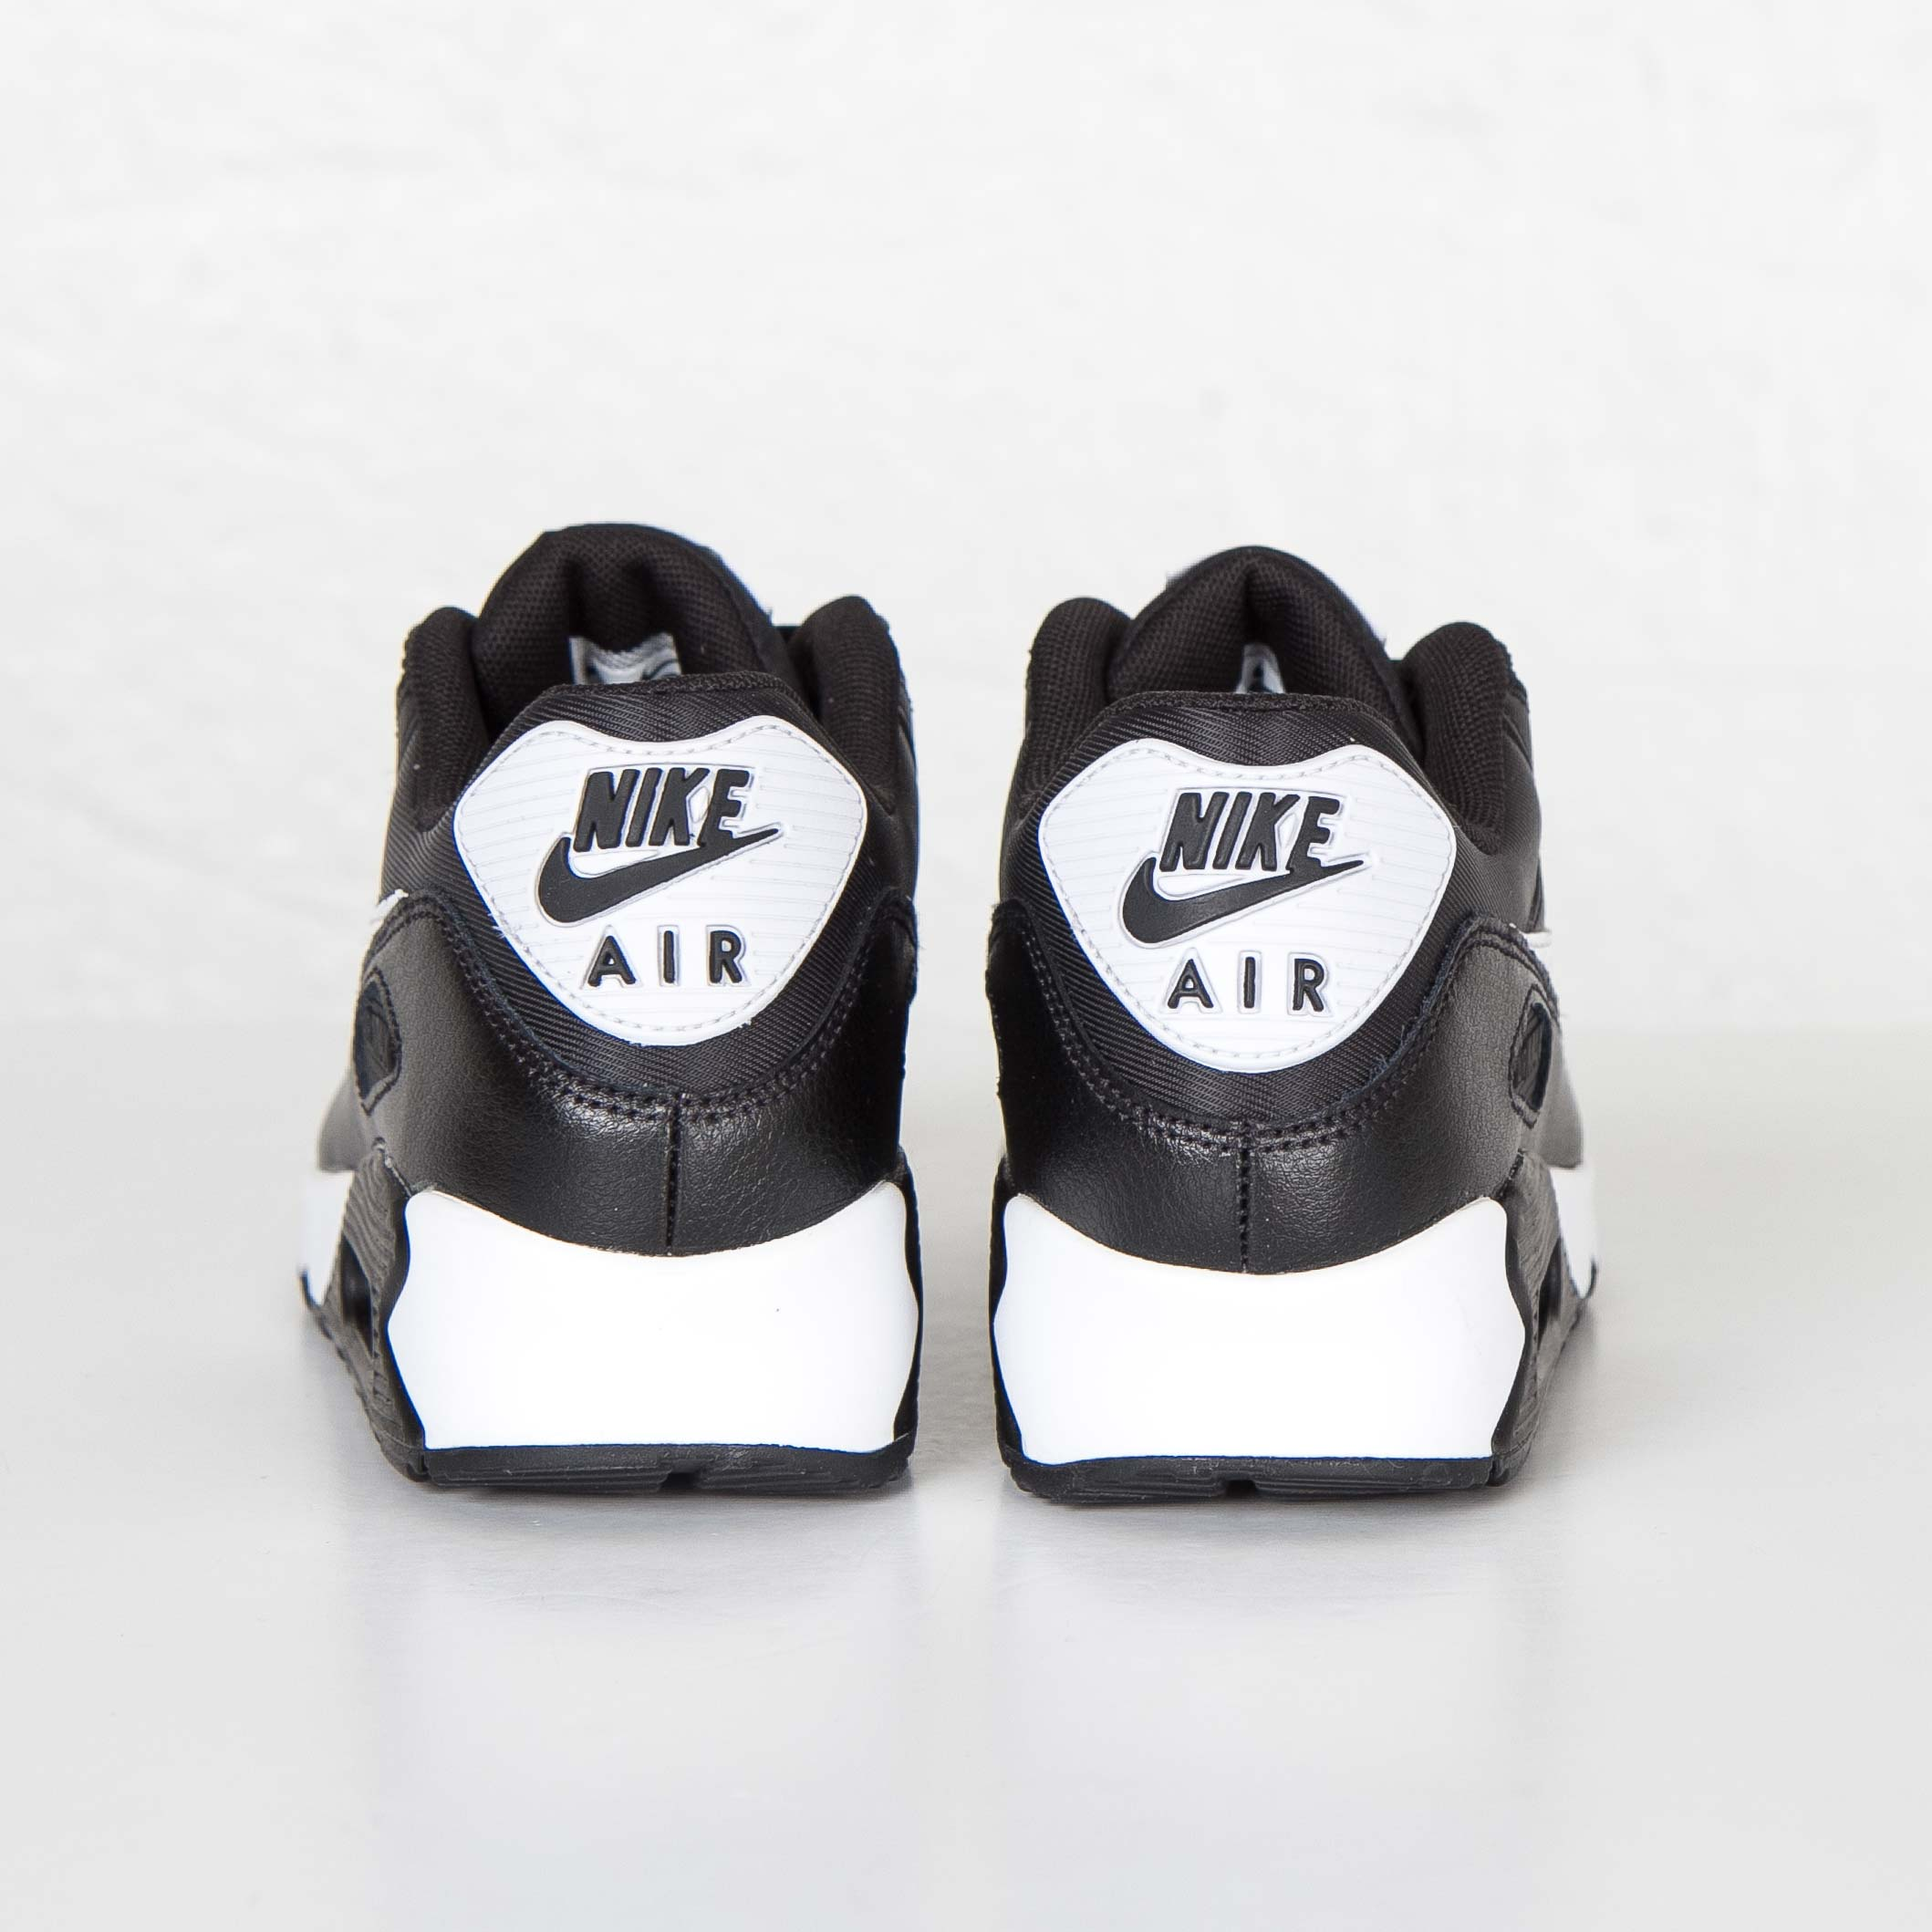 sports shoes 0e037 d284a Nike Wmns Air Max 90 Essential - 616730-023 - Sneakersnstuff   sneakers    streetwear online since 1999